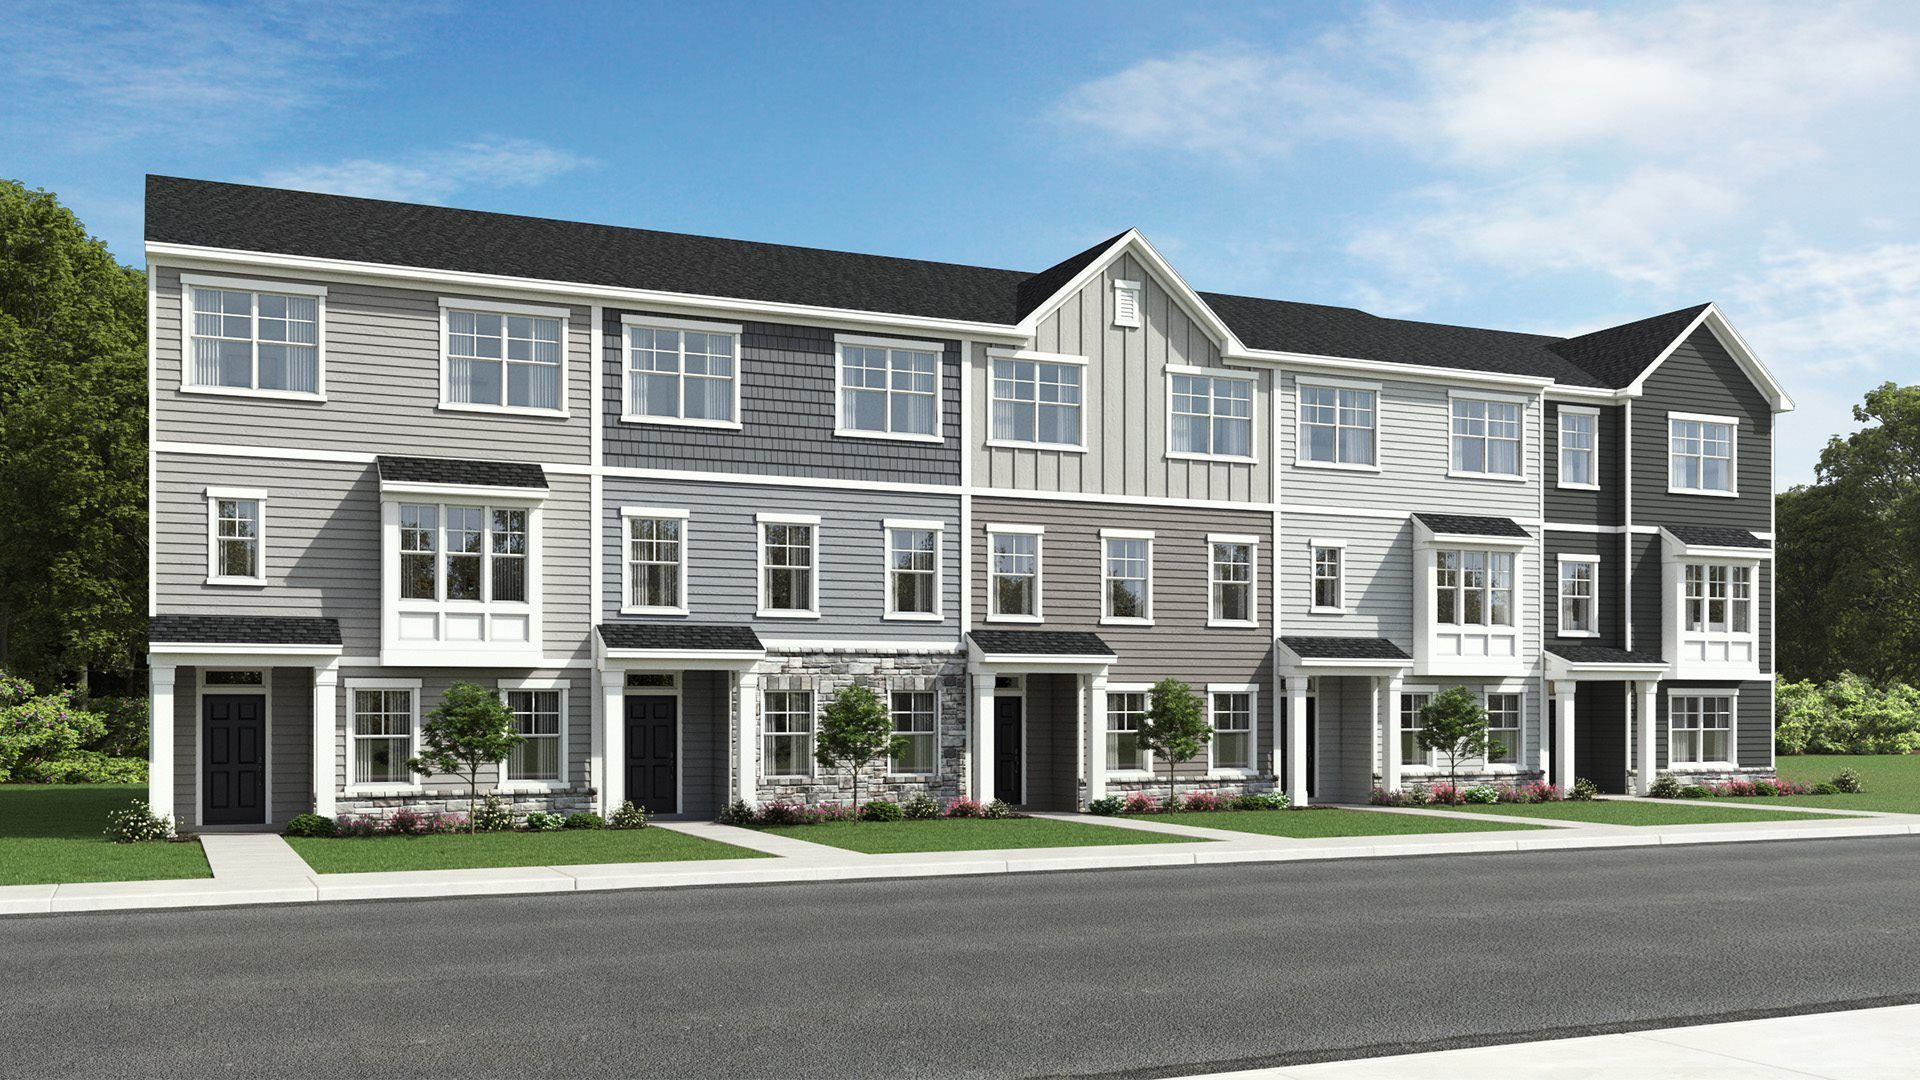 Willows at Traditions - New Townhomes in Wake Forest